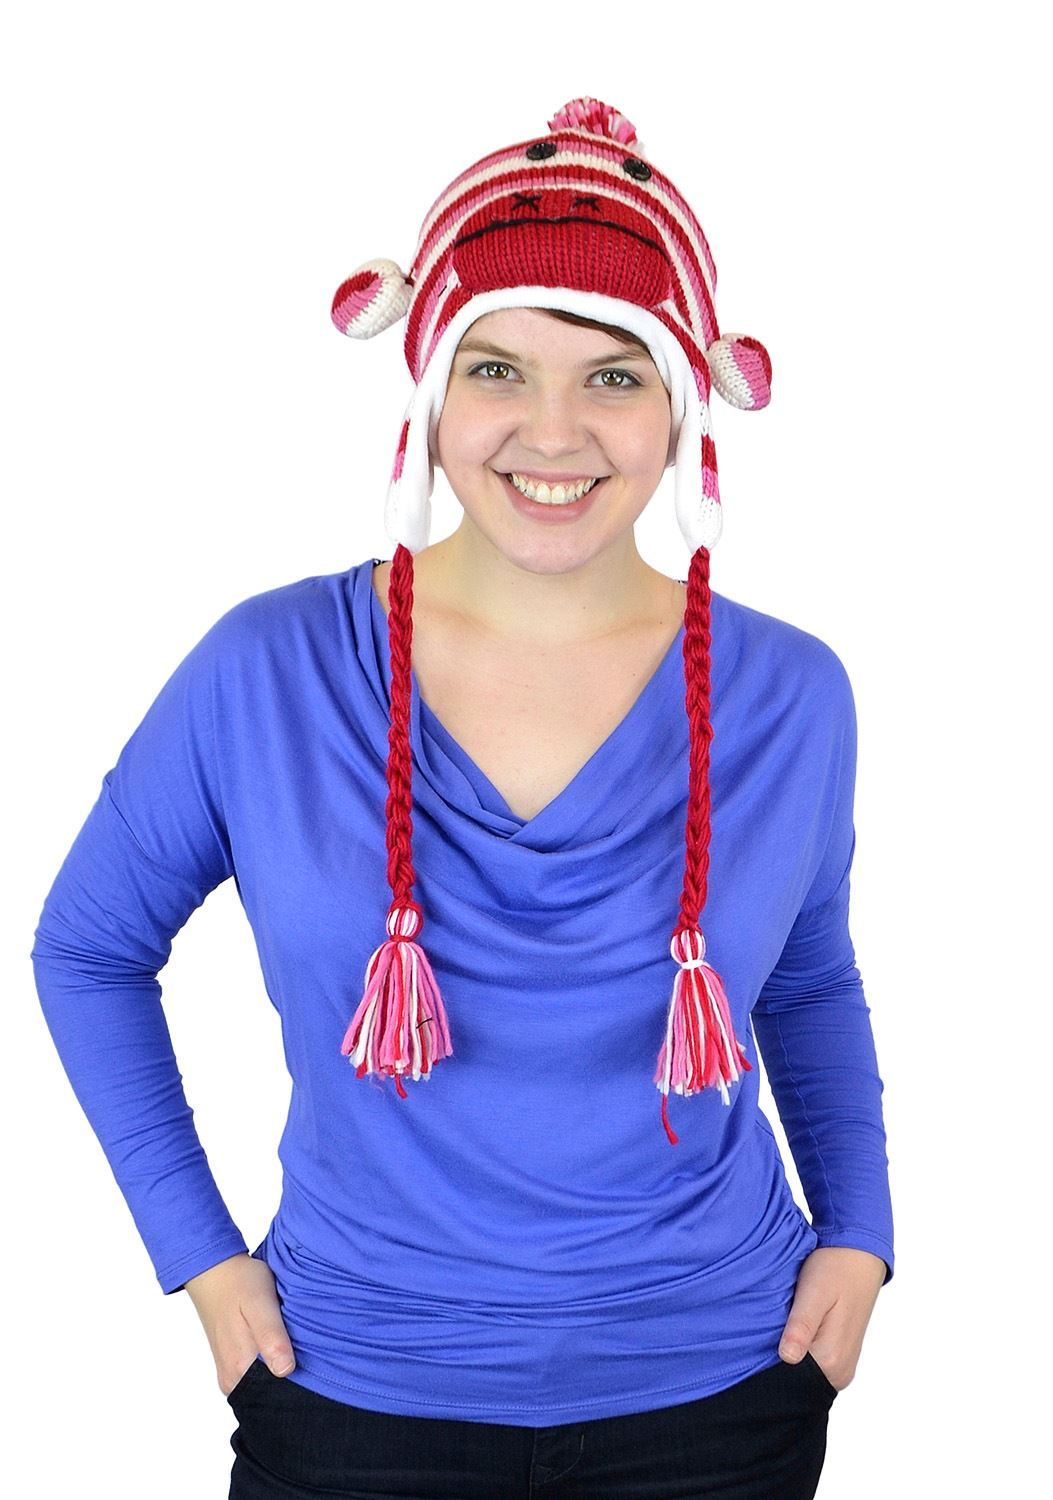 Belle Donne - Unisex Winter Monkey Animal Hats with Pom Pom - Red